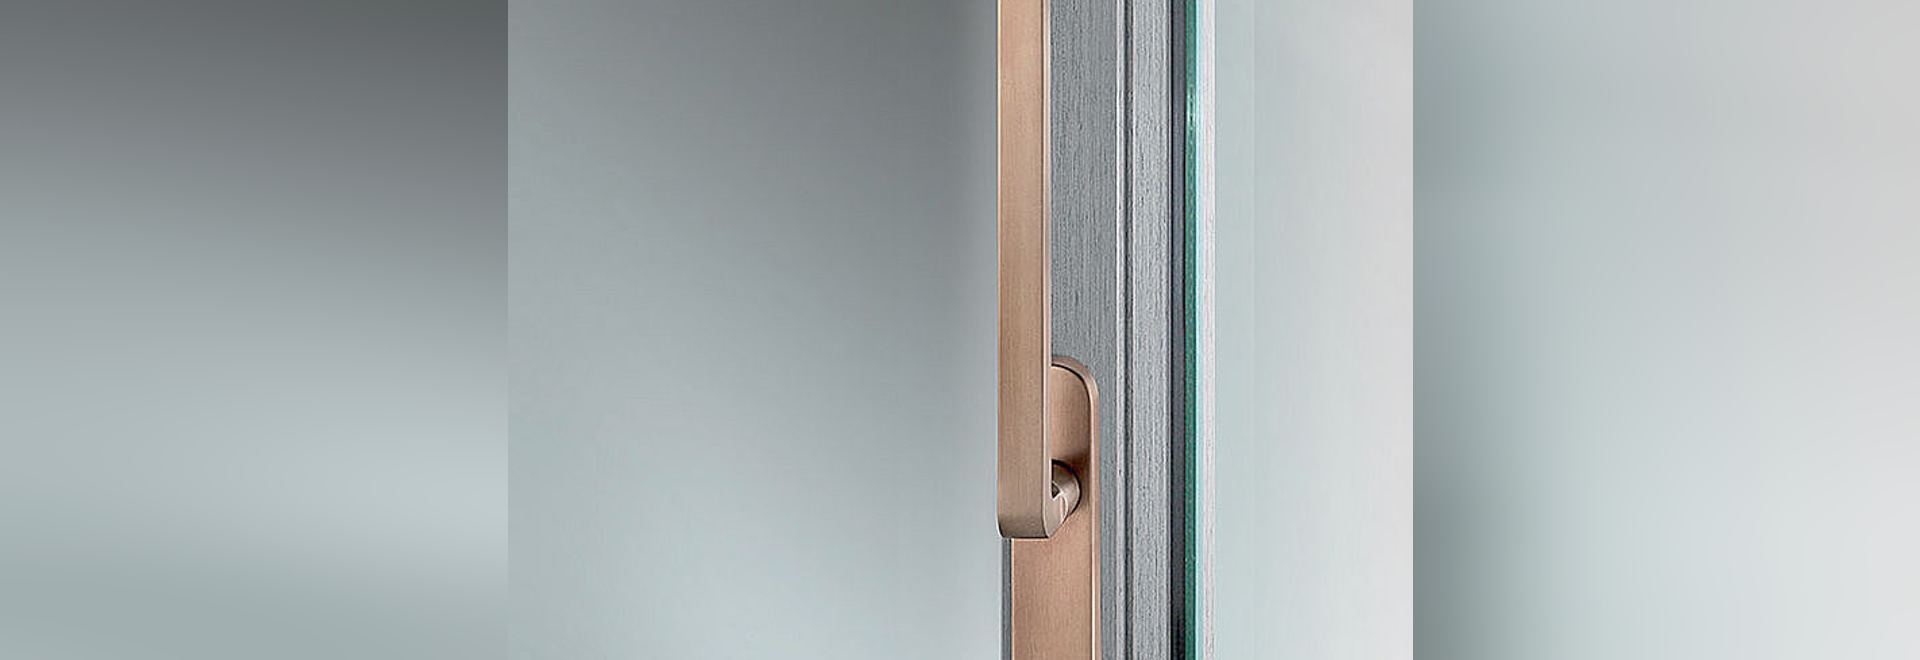 Classics for modernity from FSB door and window hardware in bronze for inside and out & Classics for modernity from FSB: door and window hardware in bronze ...